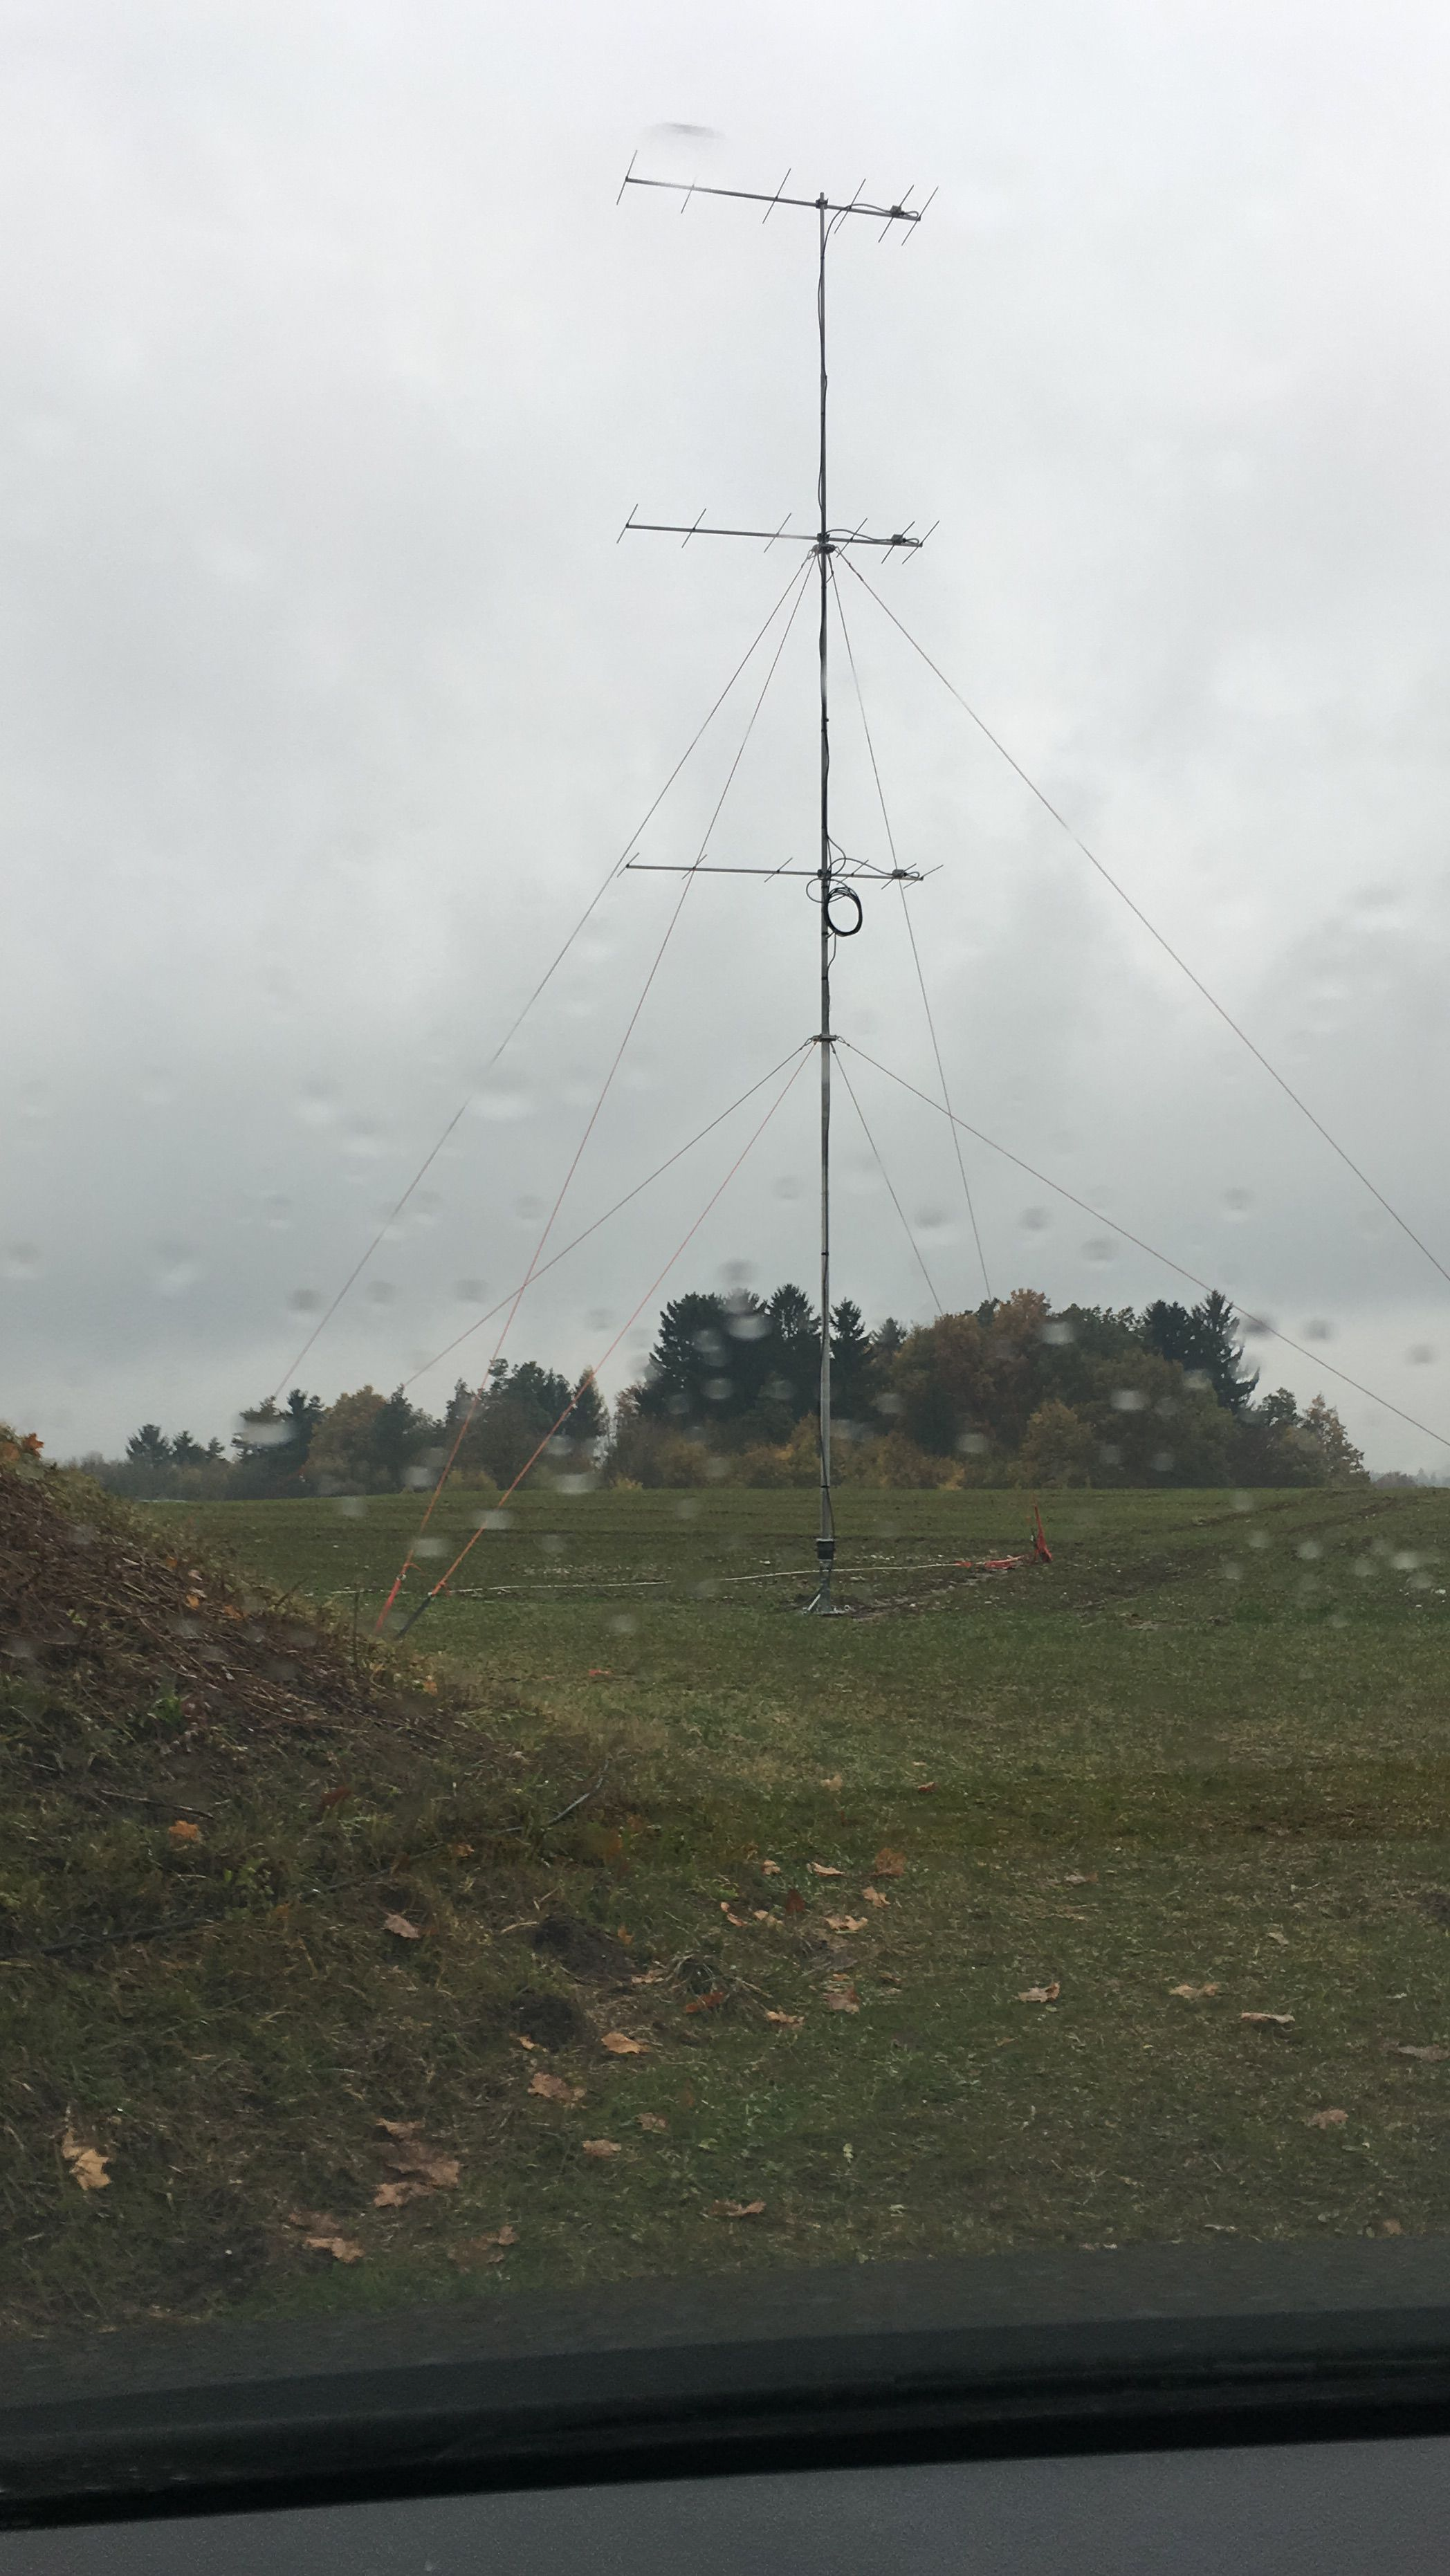 Antennas 2m Nov 2016